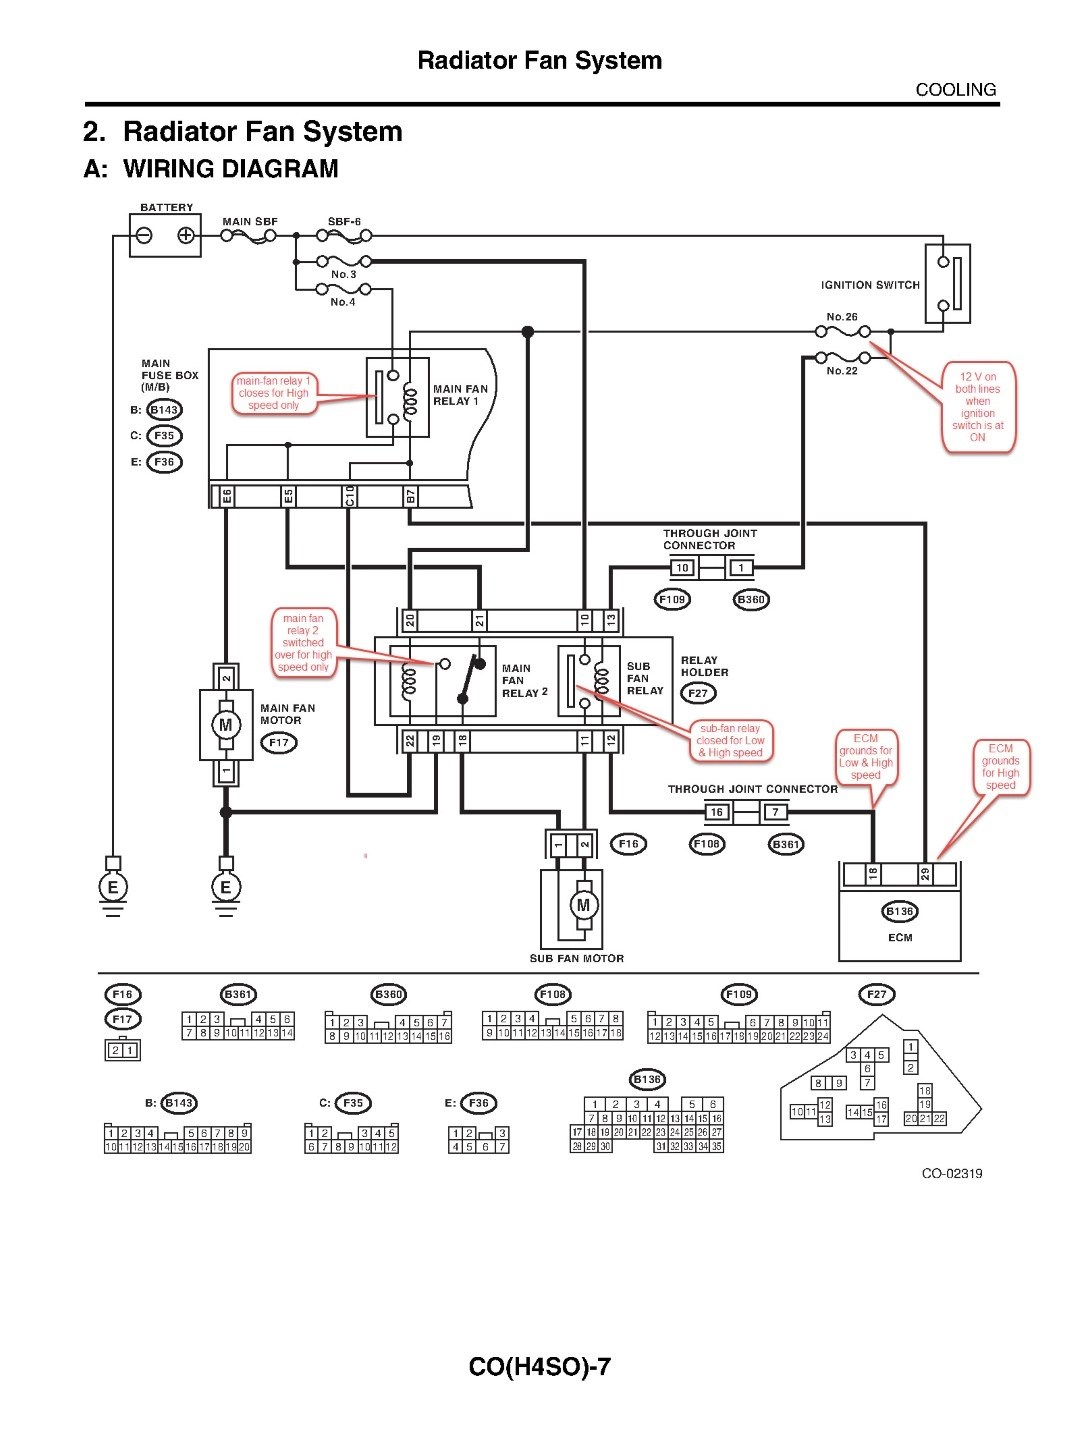 Wiring Diagram PDF: 1234 Wiring Diagram With Relay